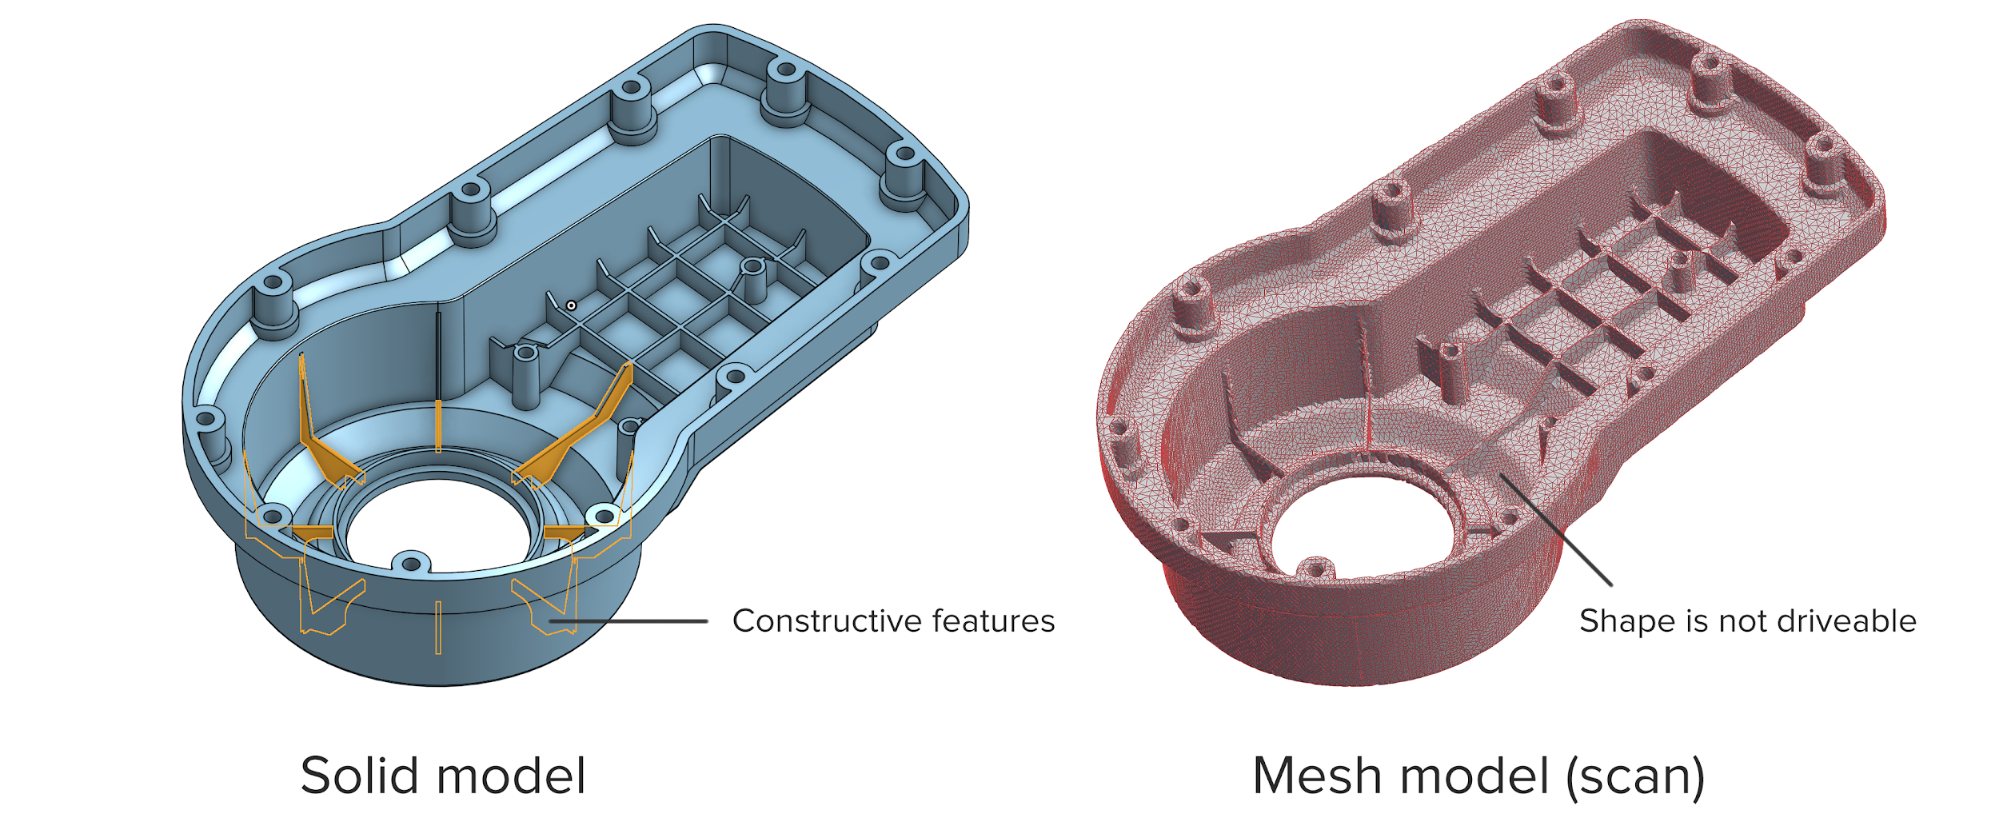 A diagram of a solid model with constructive features and a mesh model (scan) showing a shape that is not driveable